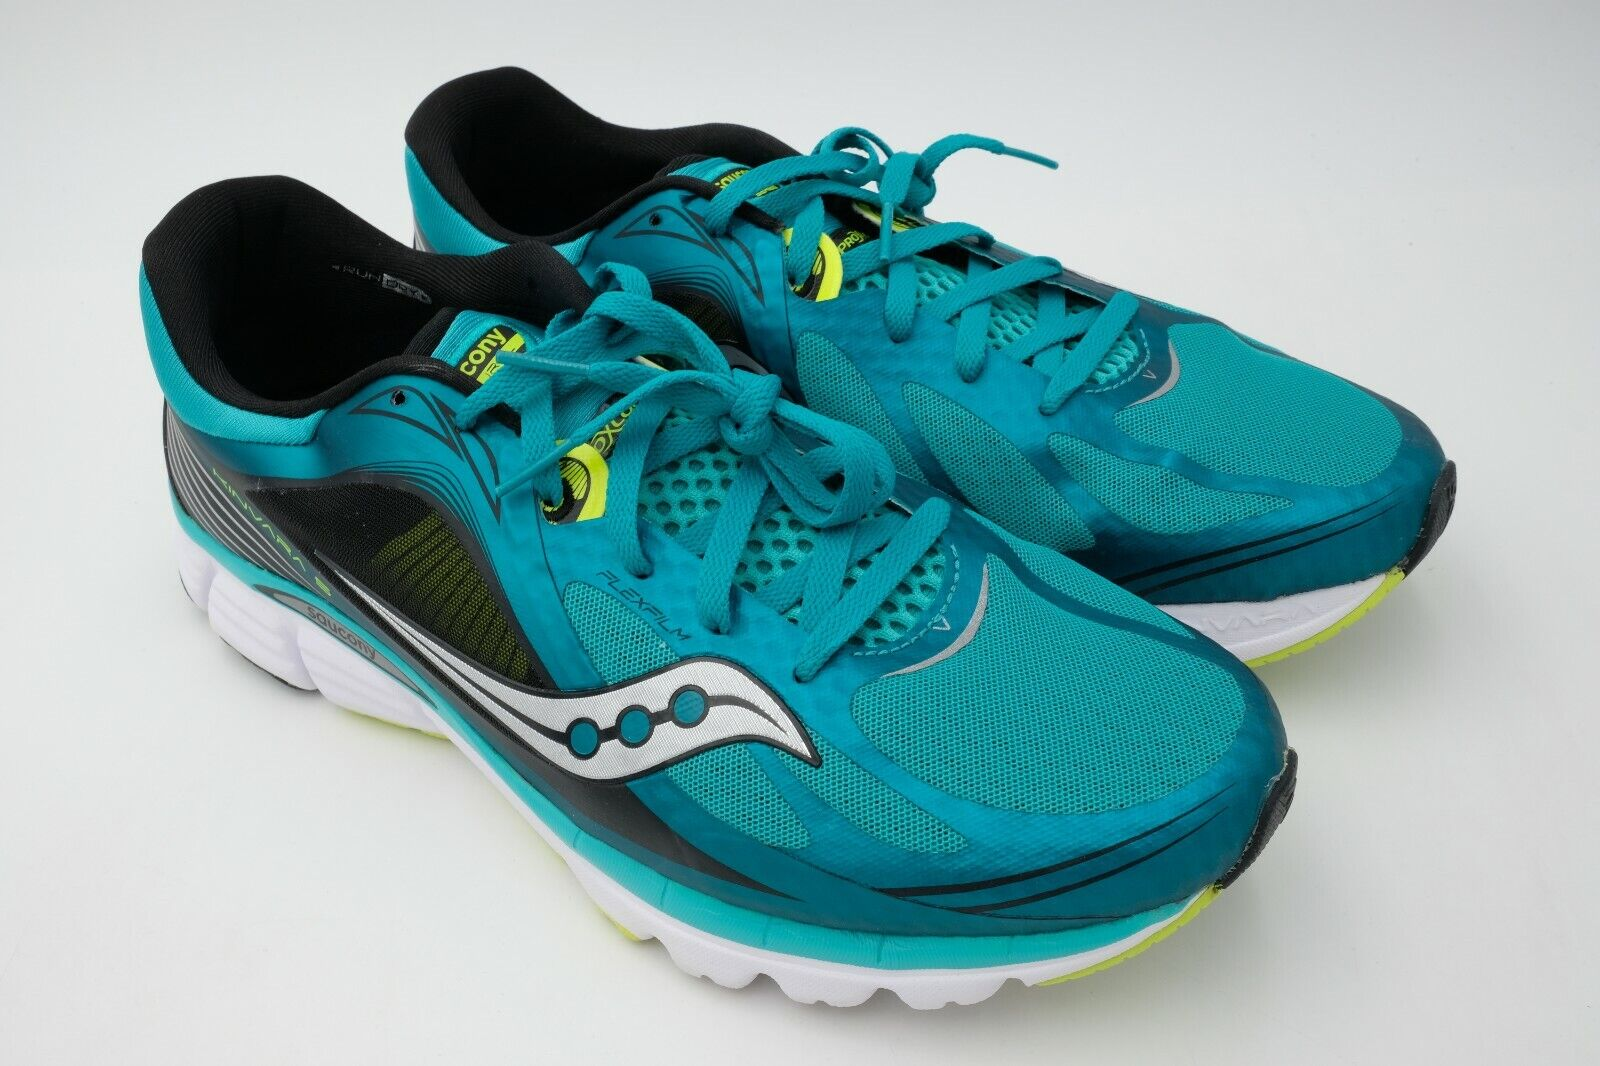 50c8fea37a3ac Saucony Men s Kinvara 5 Running shoes Size US 12.5 Used Citron Teal ...